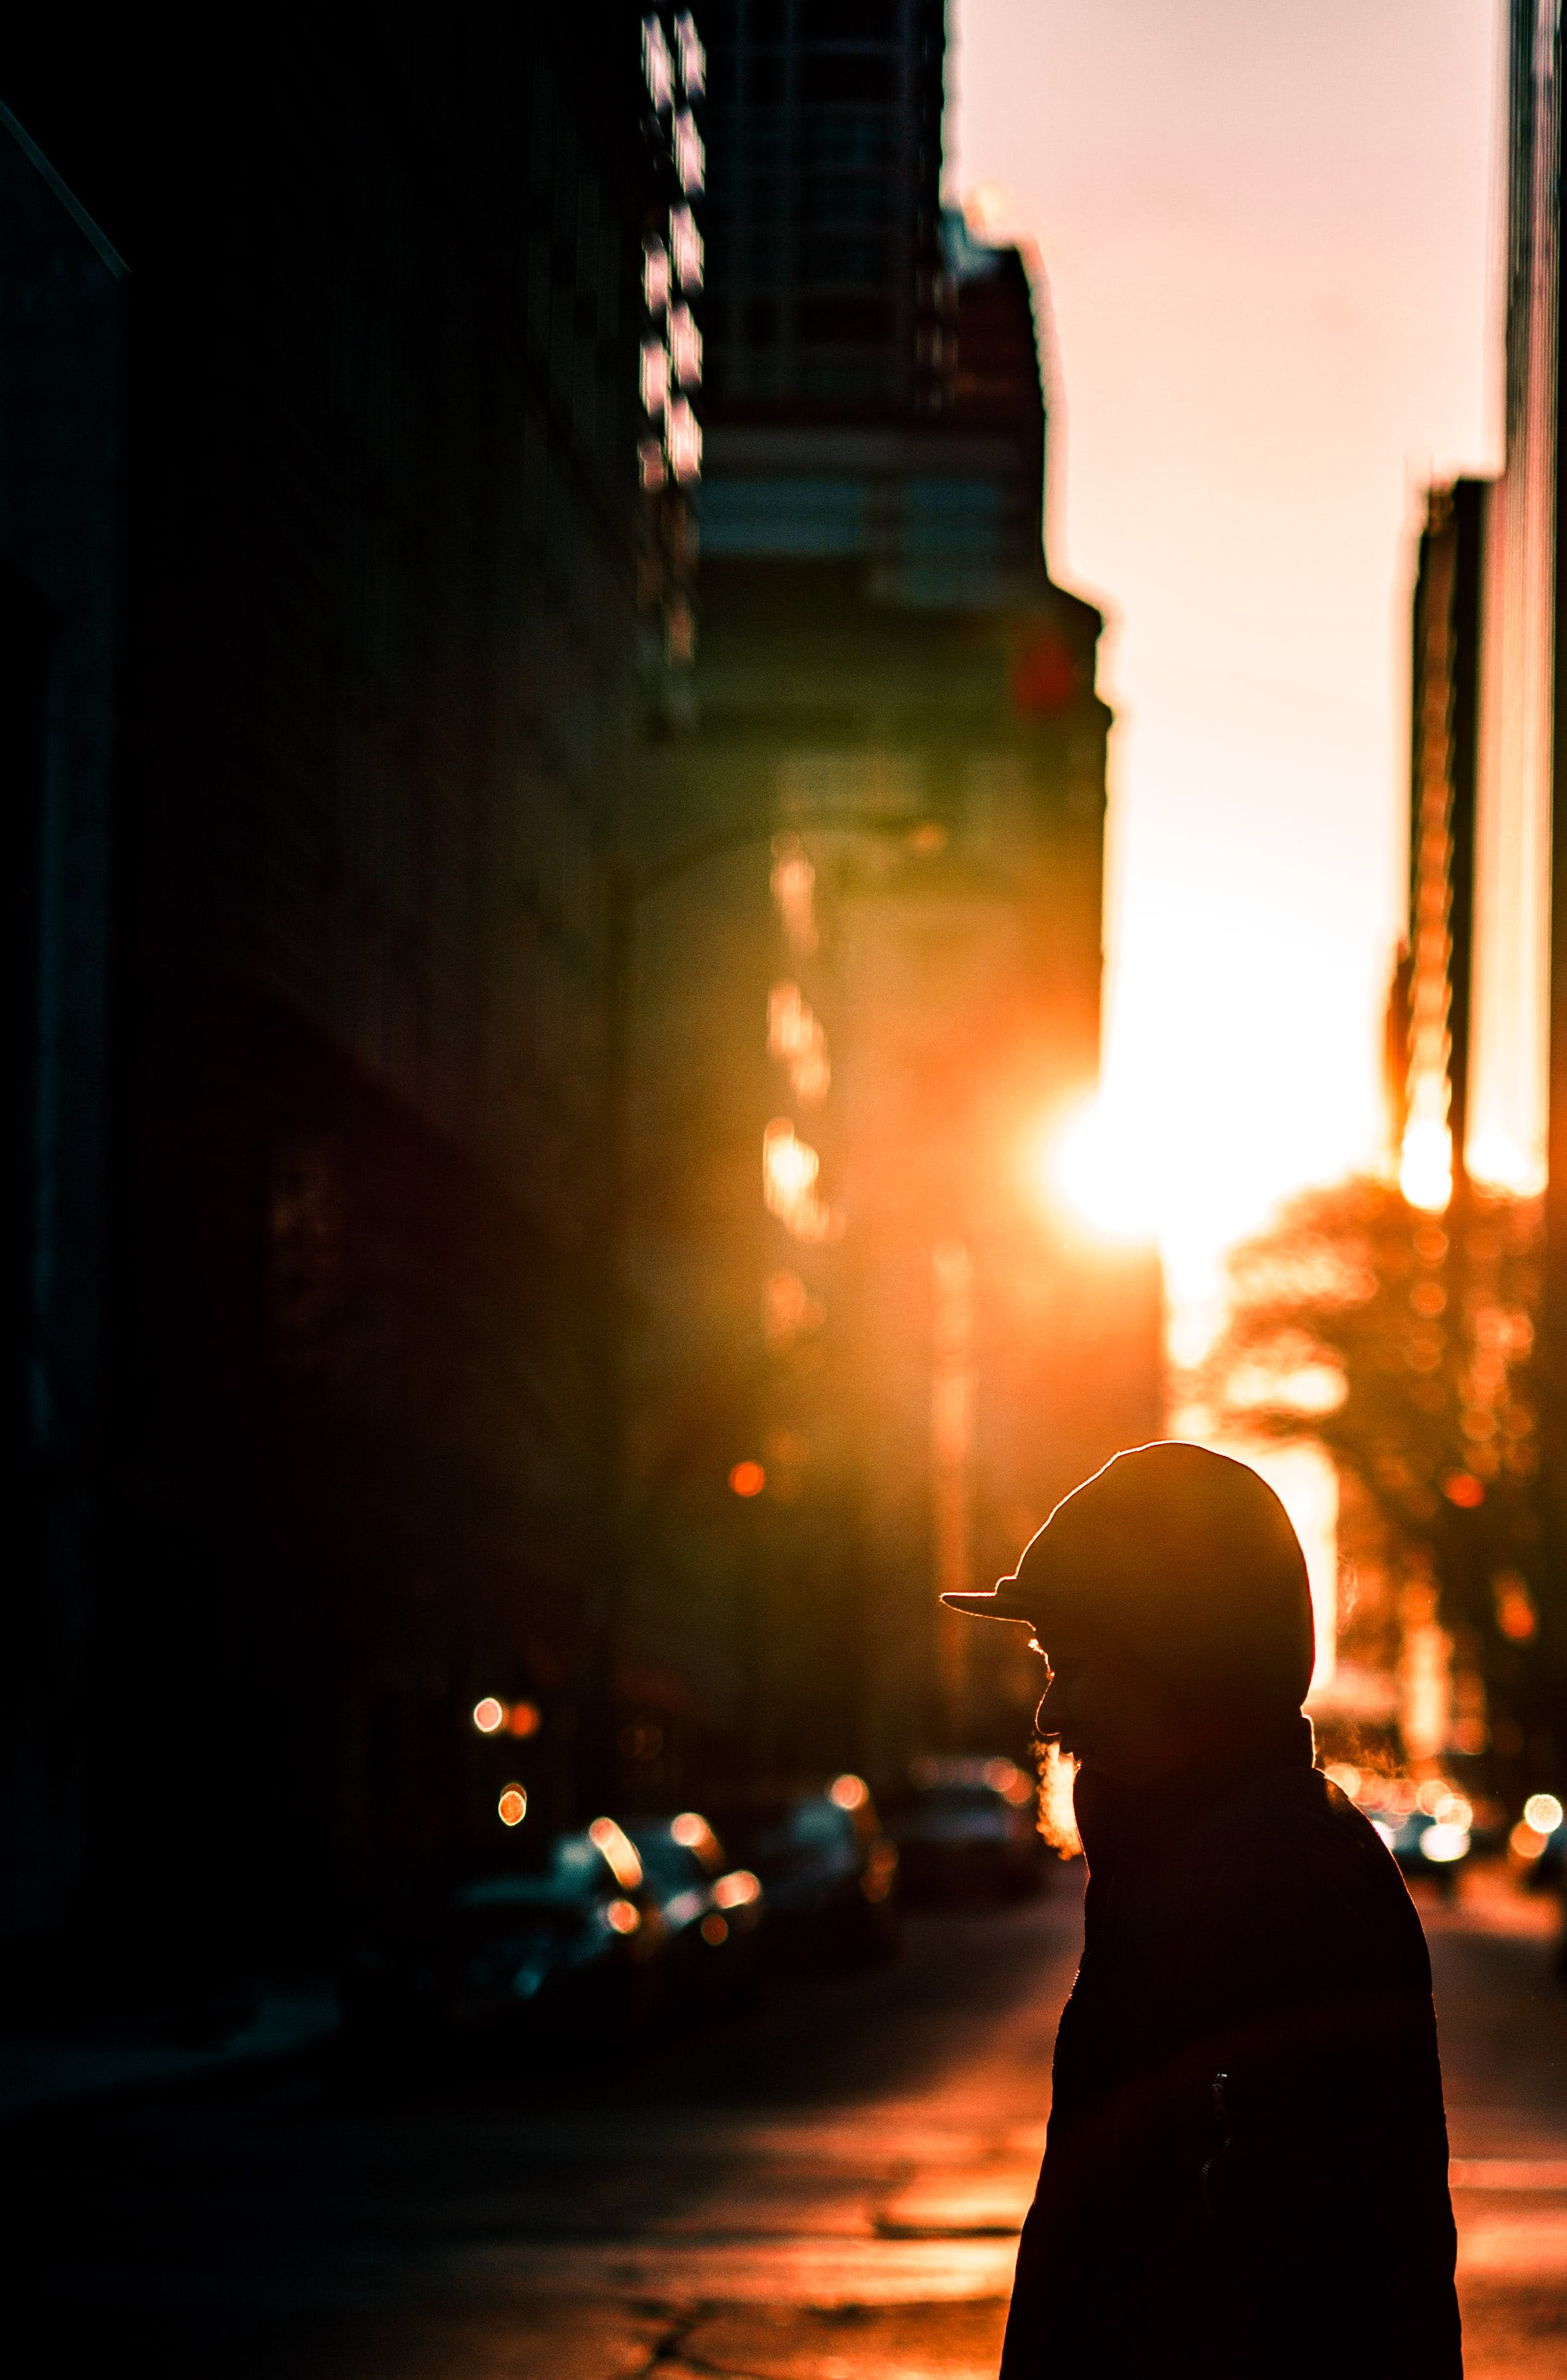 Silhouette Of Person During Dawn